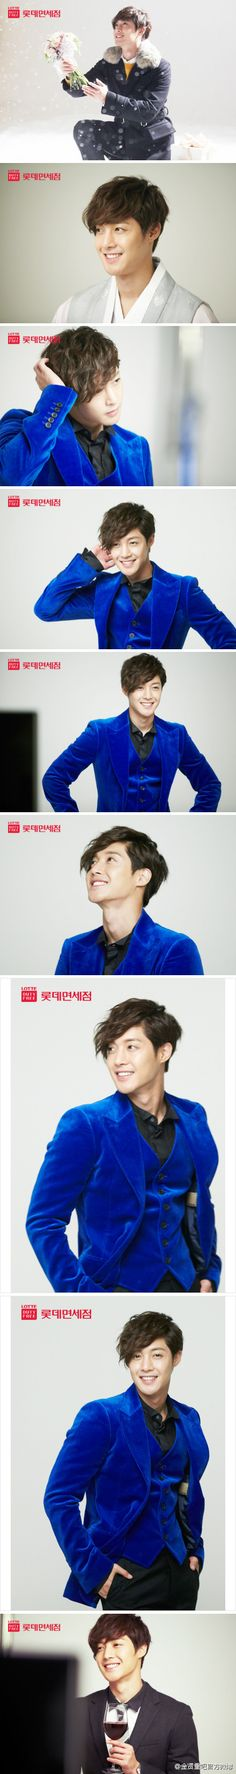 Kim Hyun Joong for Lotte